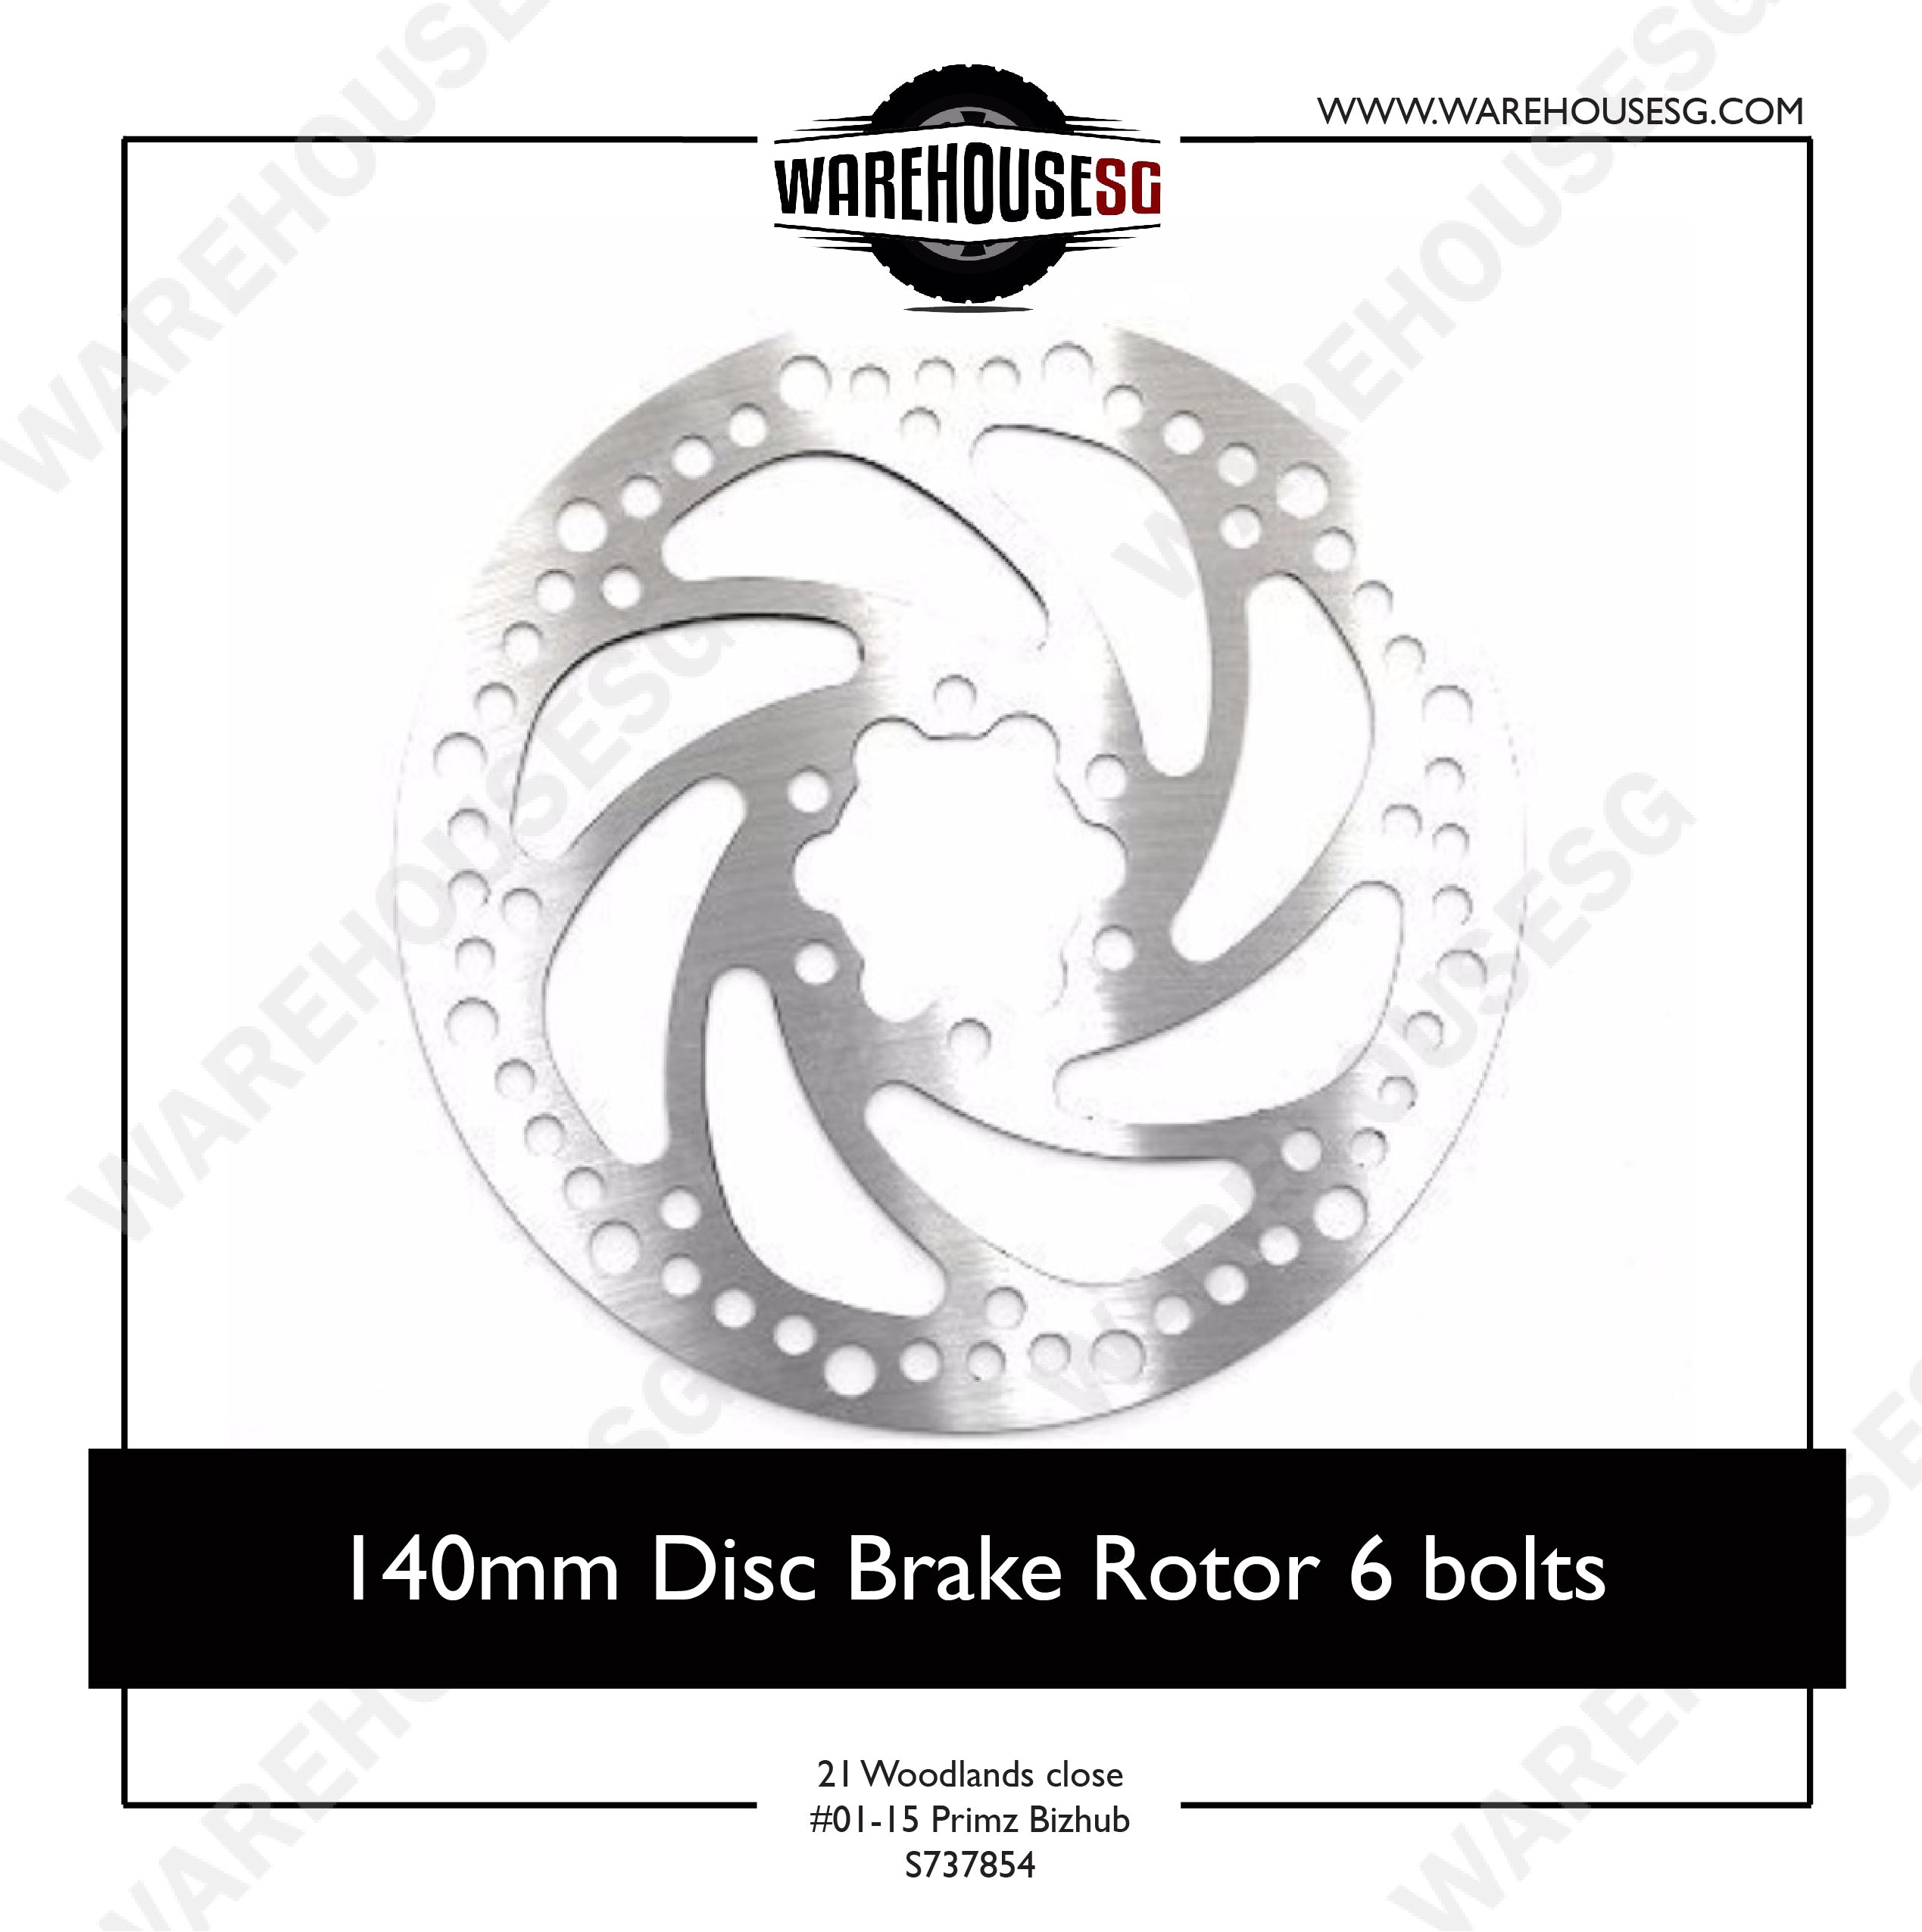 140mm Disc Brake Rotor 6 bolts for Xiaomi Mijia / Speedway 4 / Futecher / Dualtron / Reaihub R3 R4 / Sw4 Electric Scooter